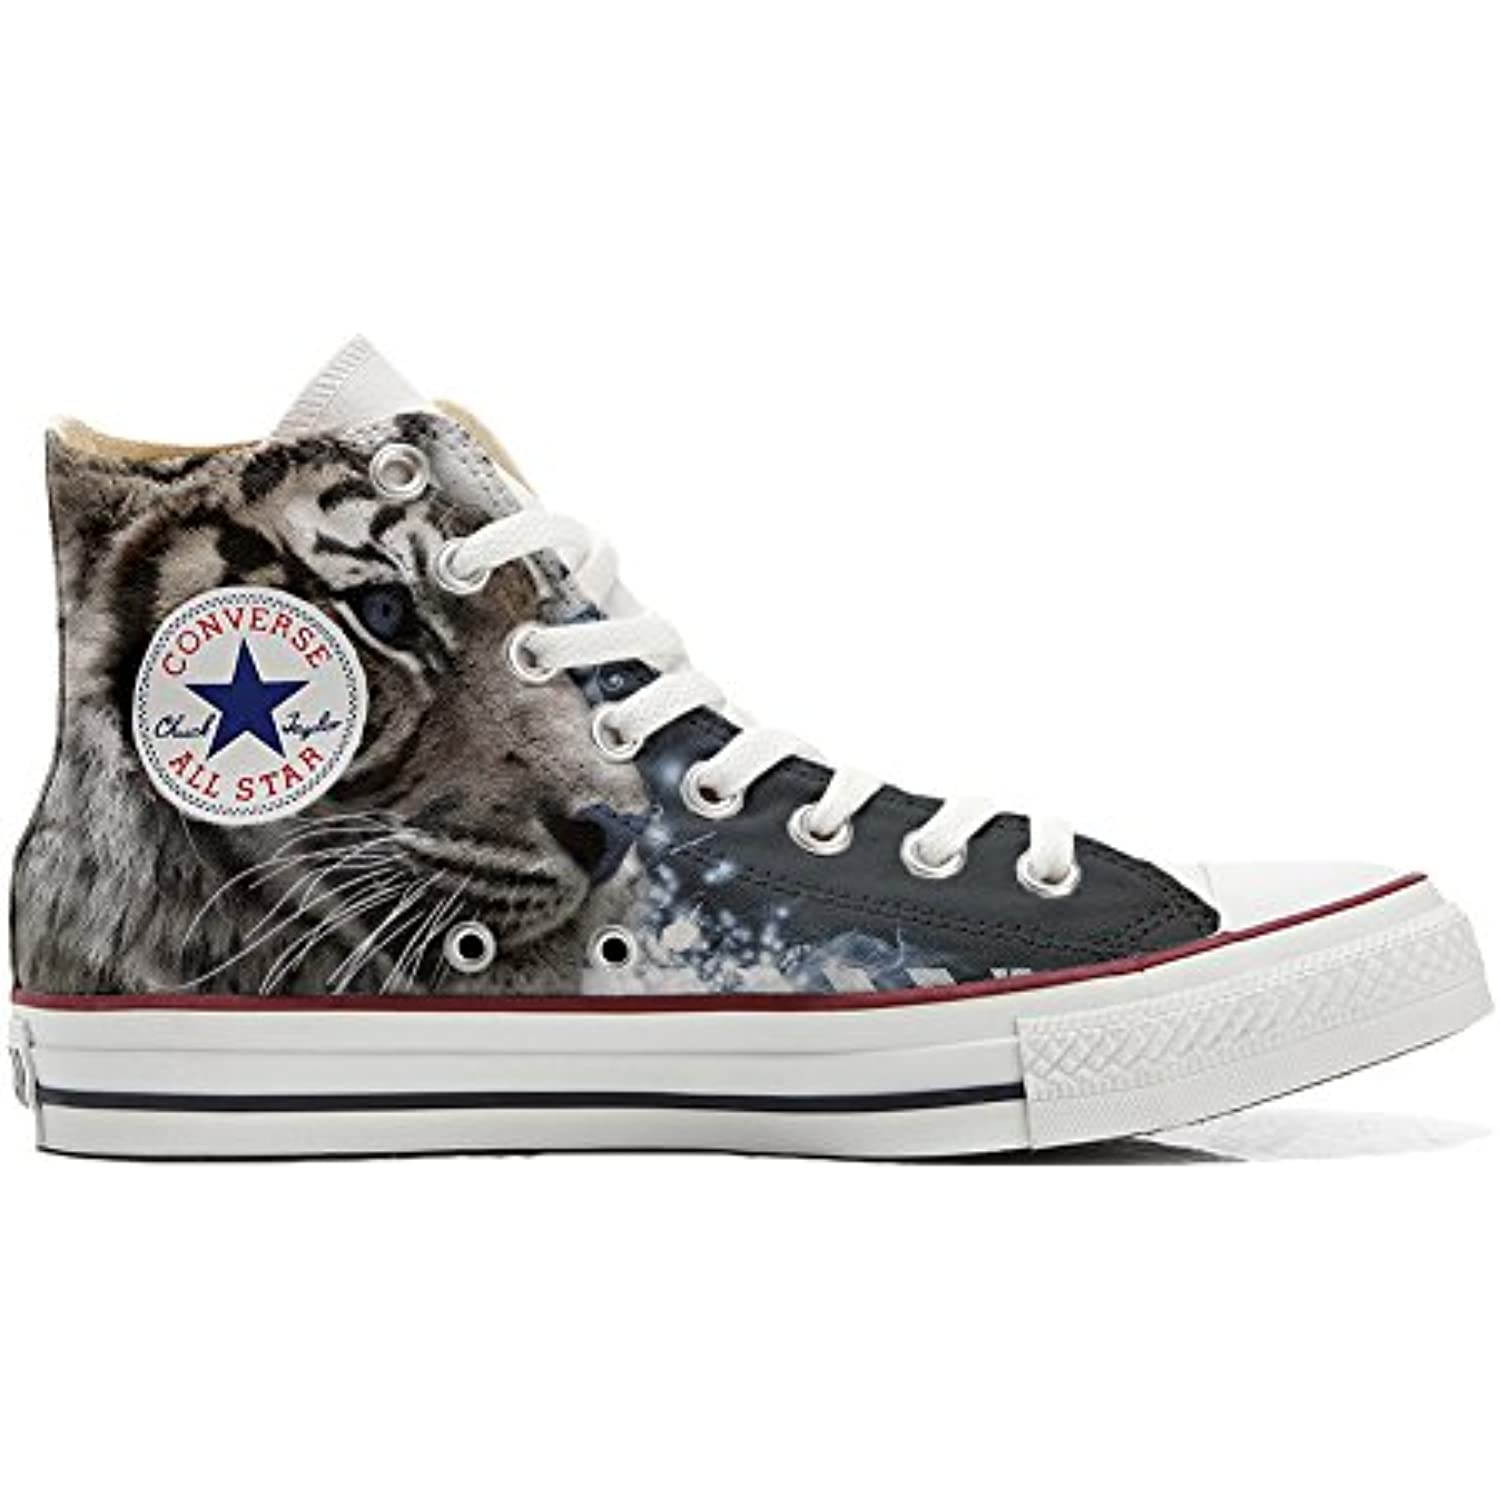 Converse Personalizzate all Star Hi Canvas, Sneaker with Unisex (Prodotto Brtigianale) Tiger with Sneaker Blue Eyes  Parent ac7bc1